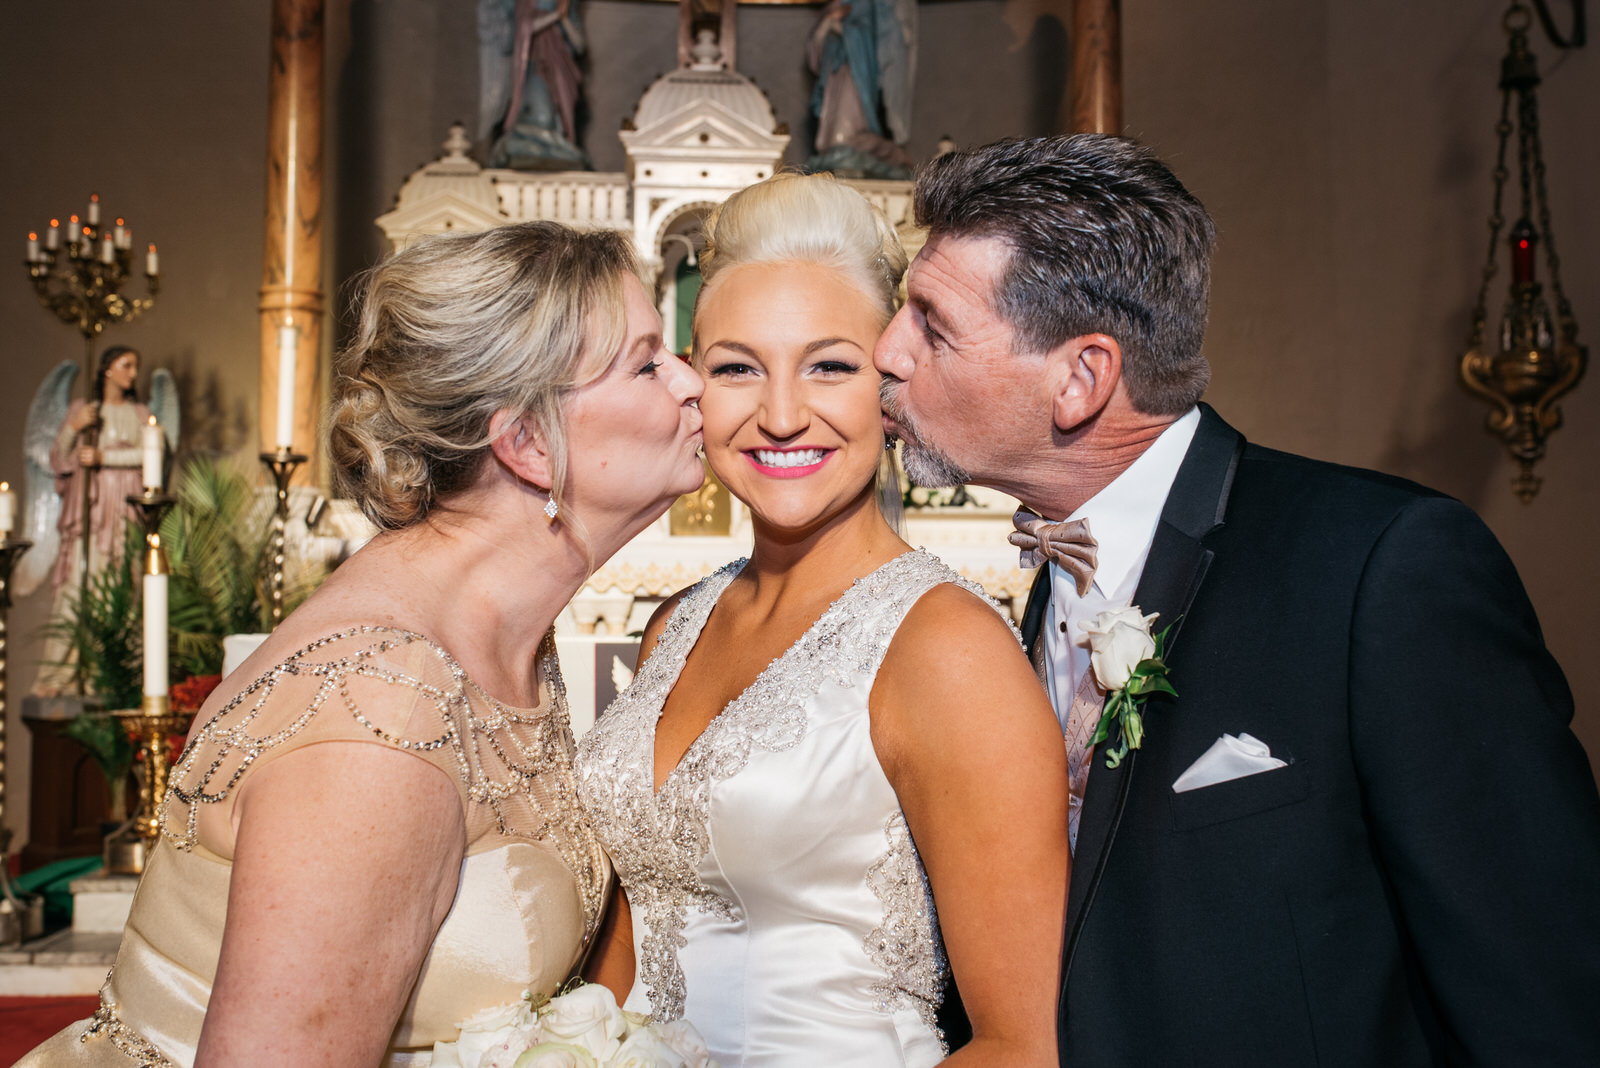 hilton_garden_inn_southpointe_pittsburgh_weddings_47.jpg